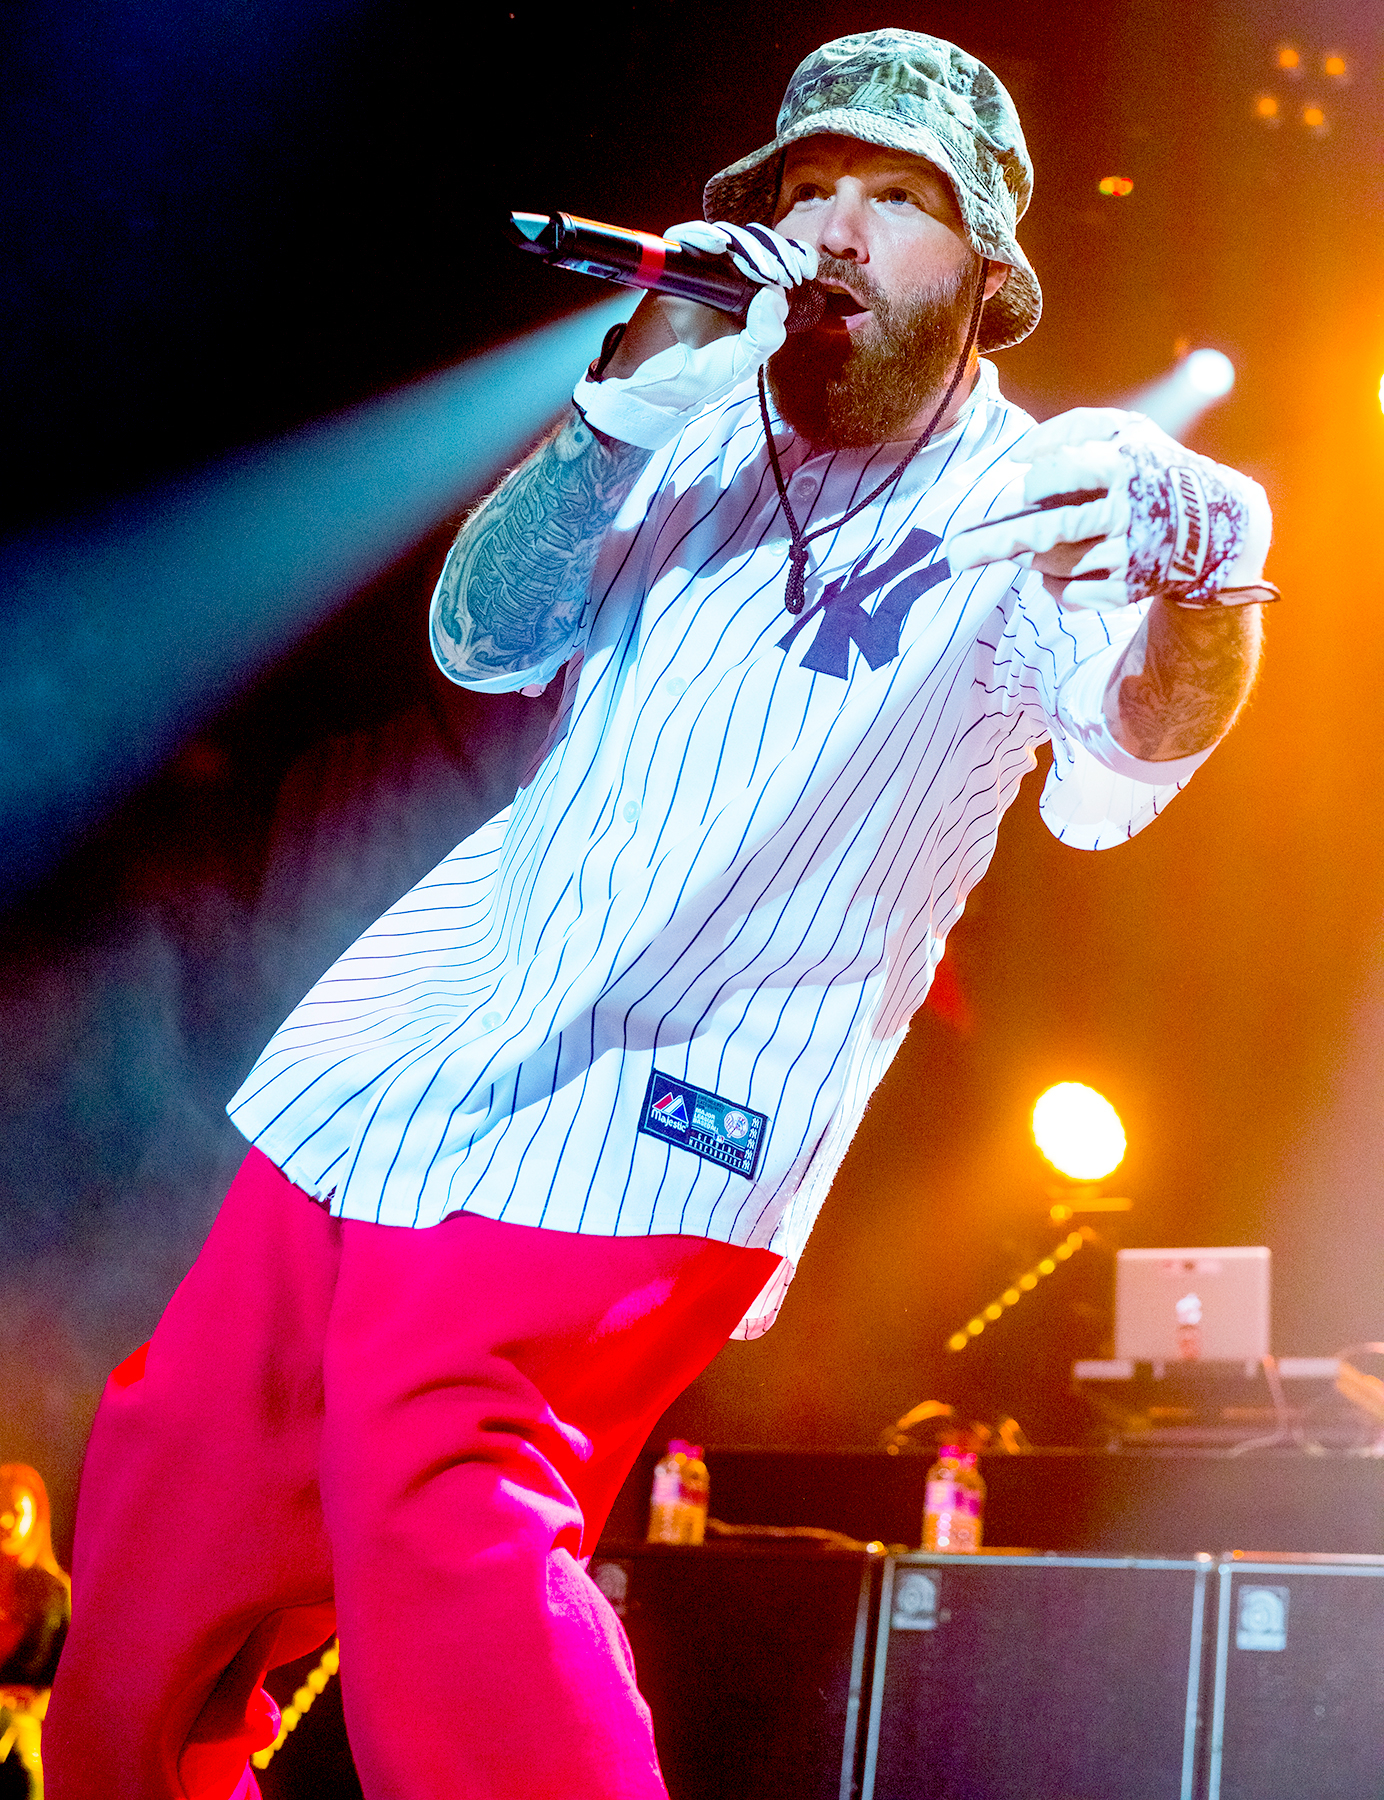 Fred Durst of Limp Bizkit performs on stage at the SSE Arena on December 16, 2016 in London, England.